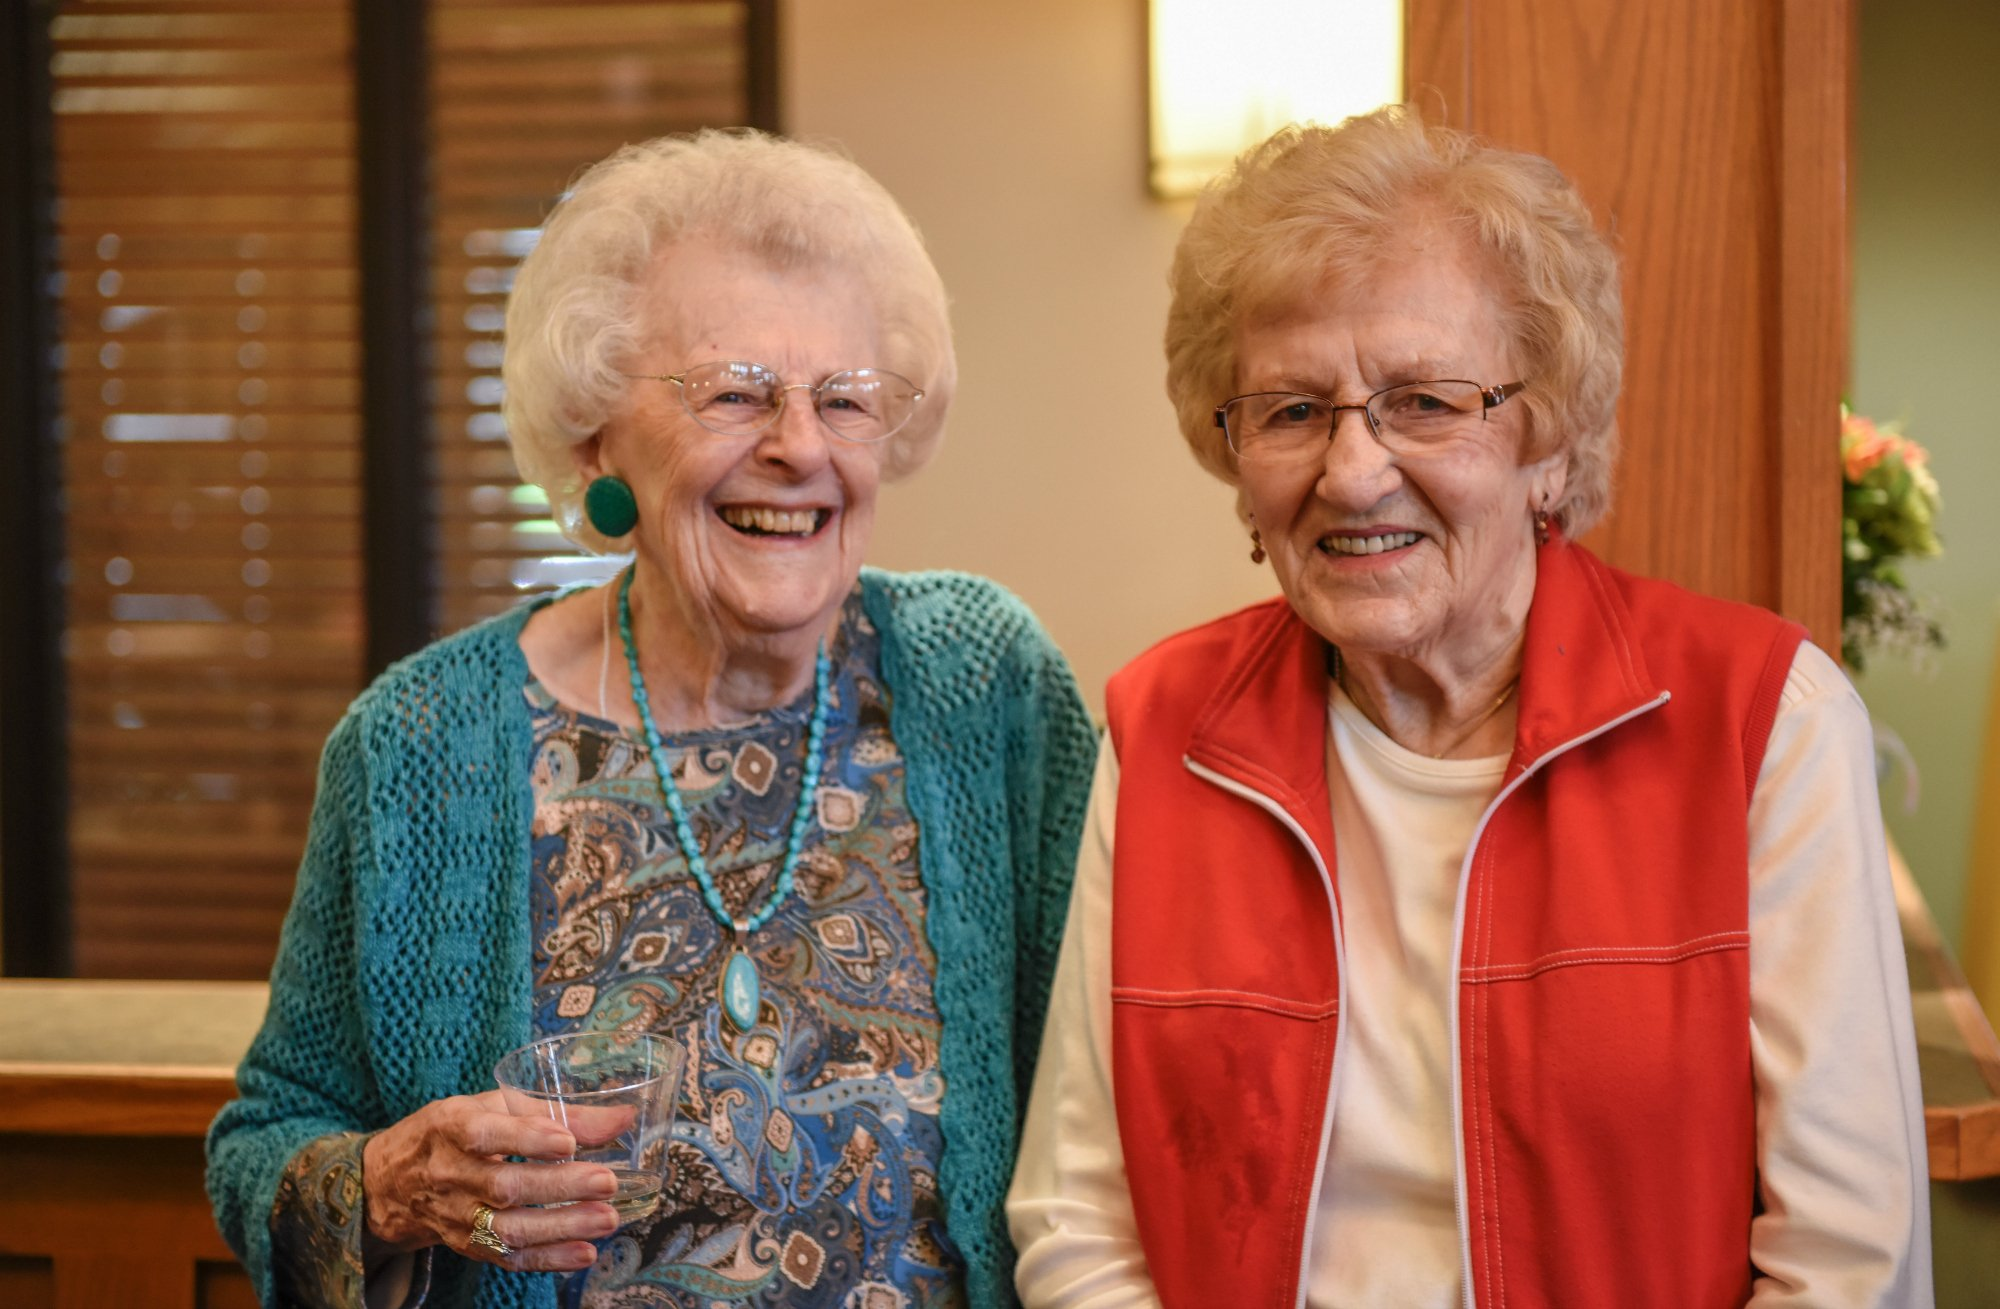 There's always someone to laugh with at our senior living facility in Milwaukie, OR